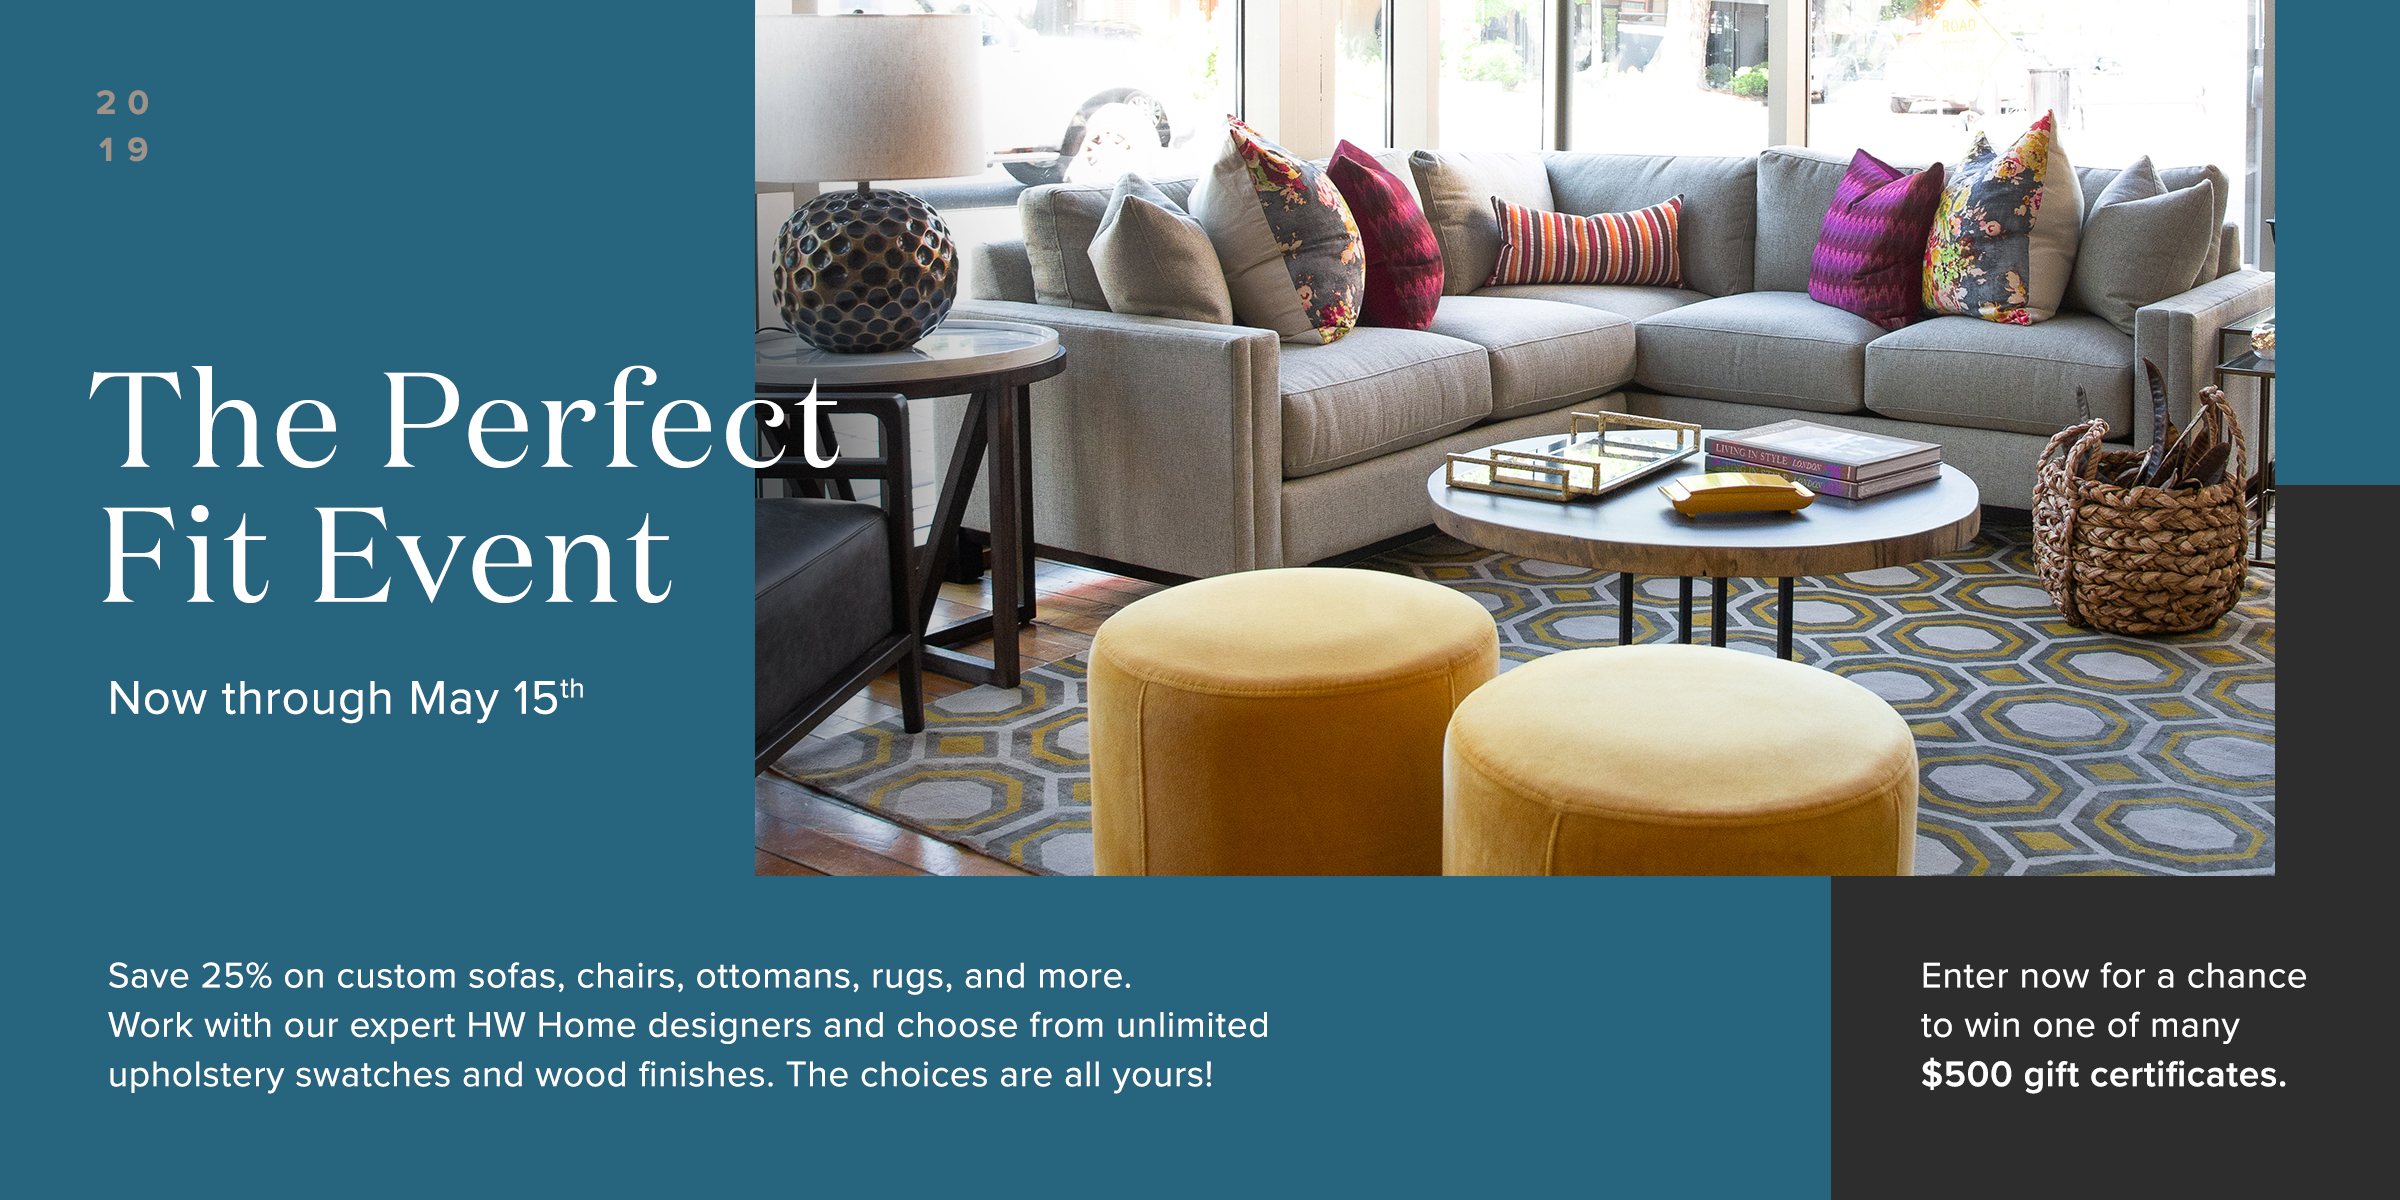 Perfect Fit Event 2019 Spring